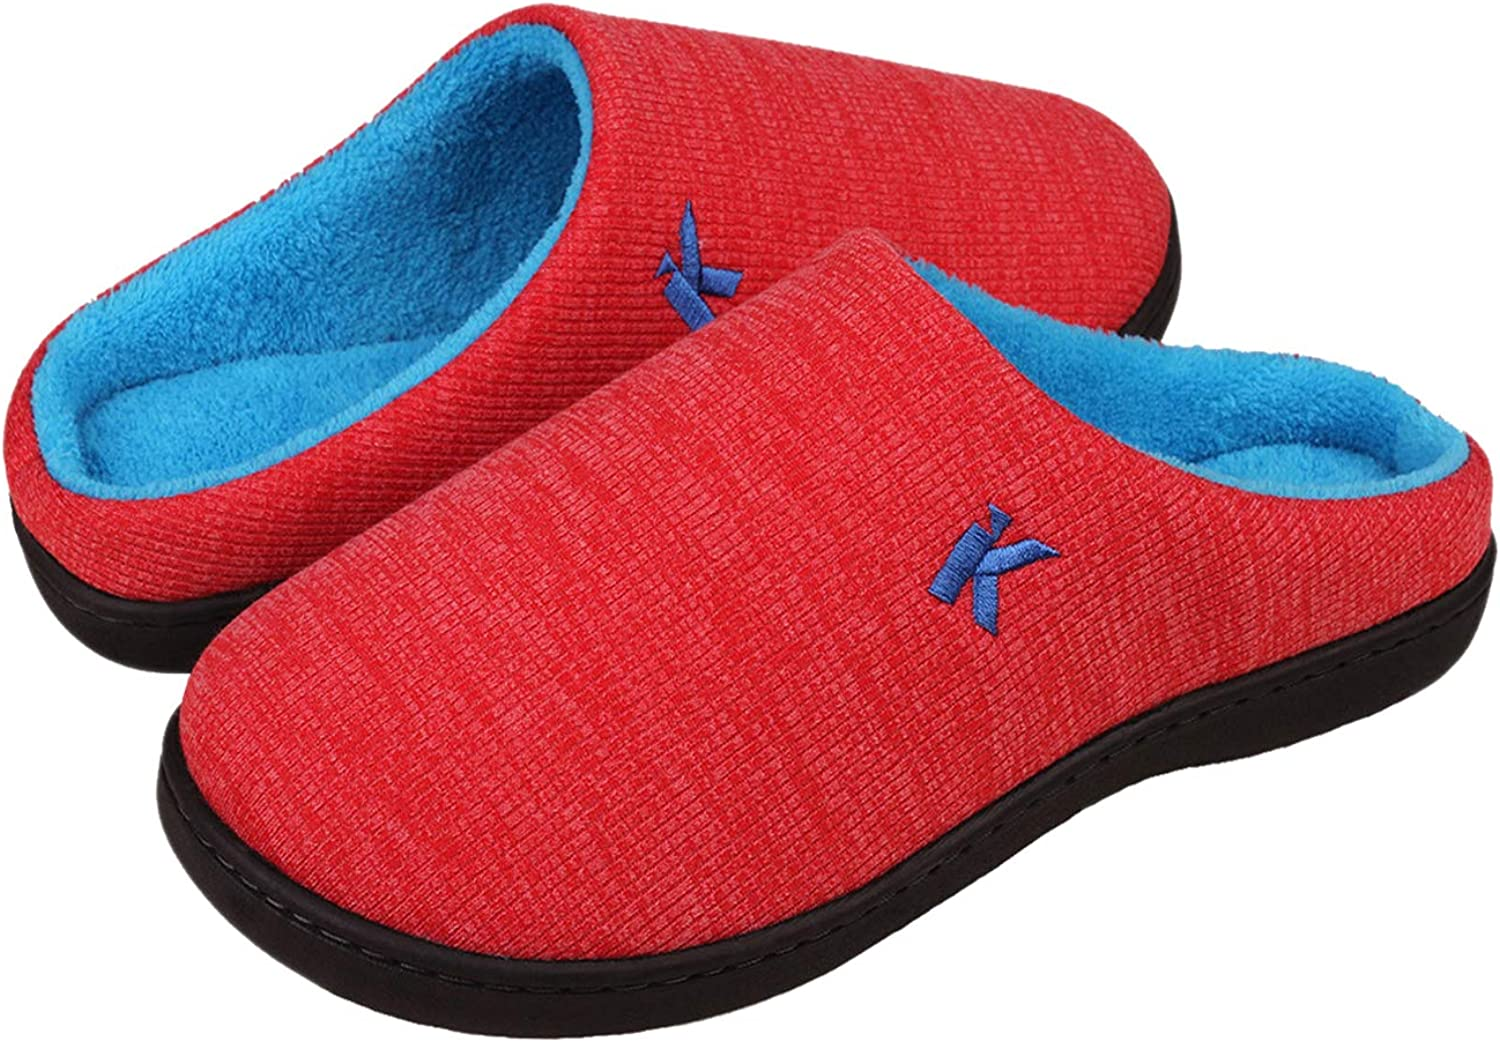 Kunsto Women's Cozy House Slippers Knitted Cotton Home shoes with Memory Foam for Indoor Outdoor